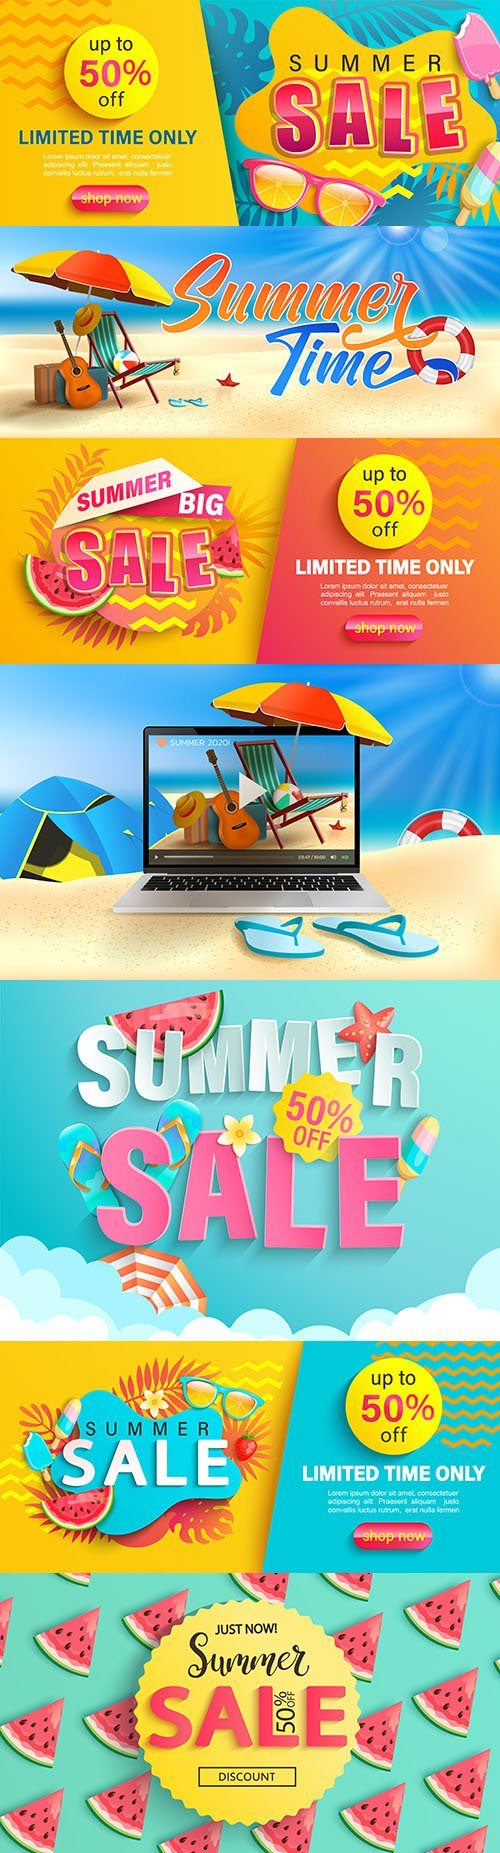 Summer sale discount up to 50% promo promotion